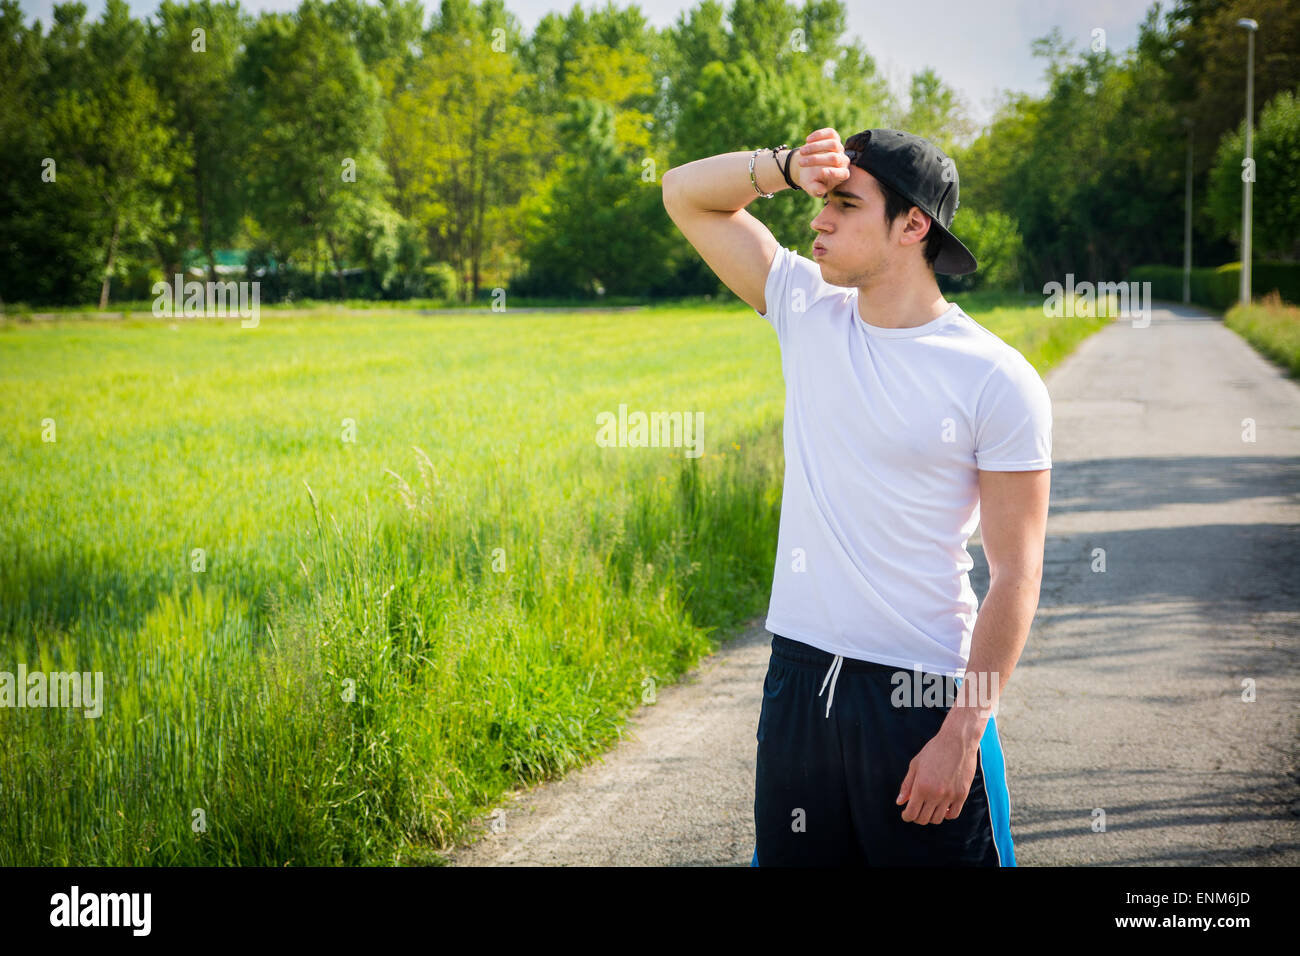 Young man resting standing in middle of the road after running - Stock Image